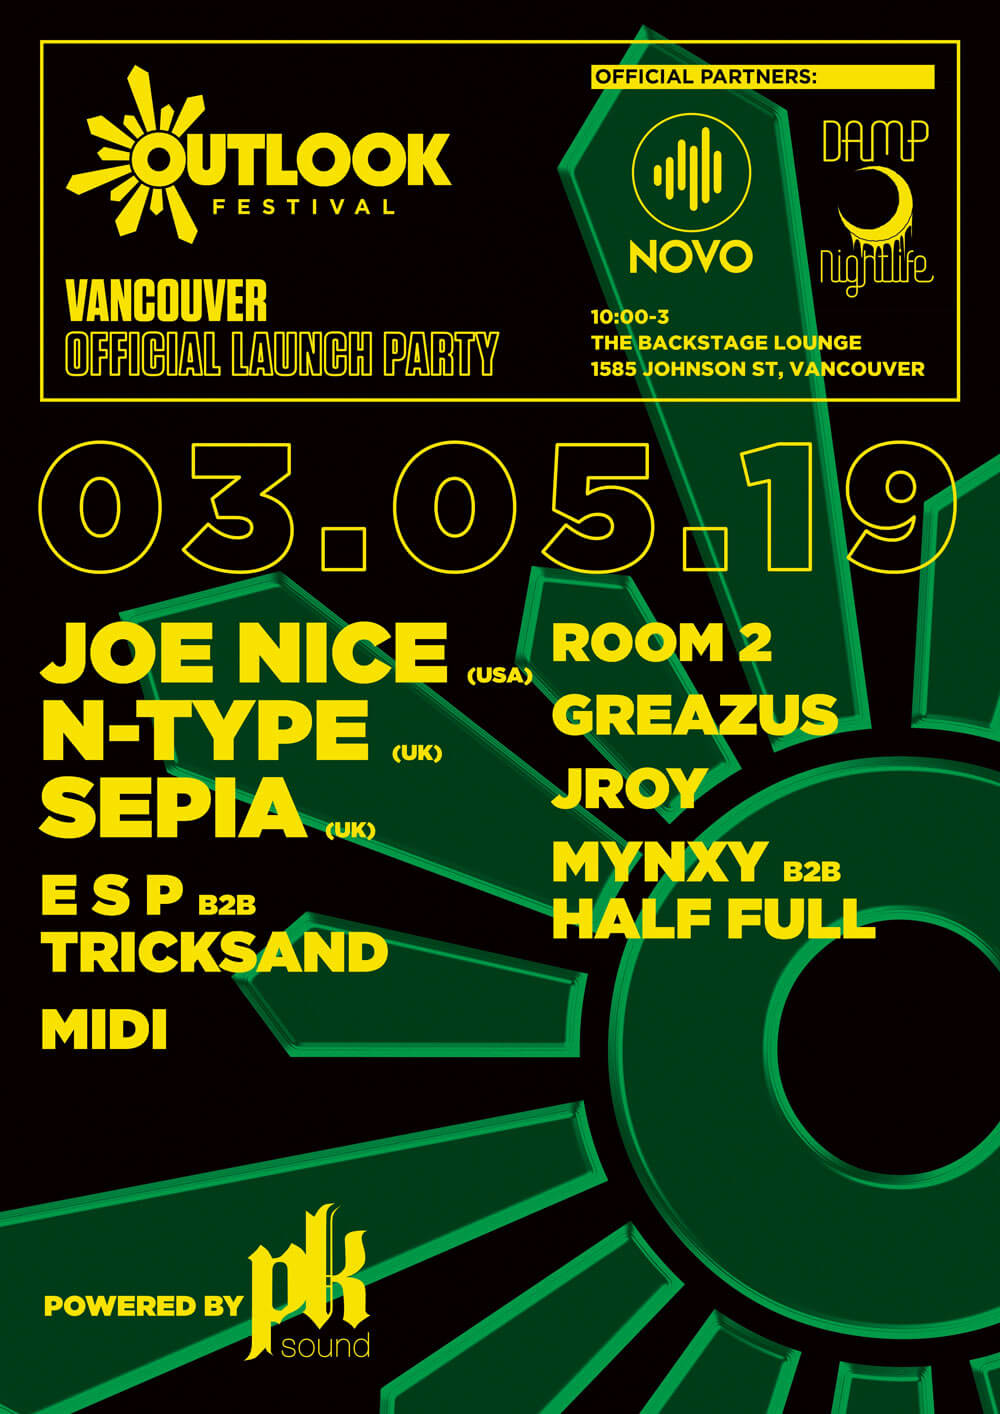 Novo, Damp Nightlife, and Outlook Festival Present : Outlook 2019 Vancouver Launch Party!